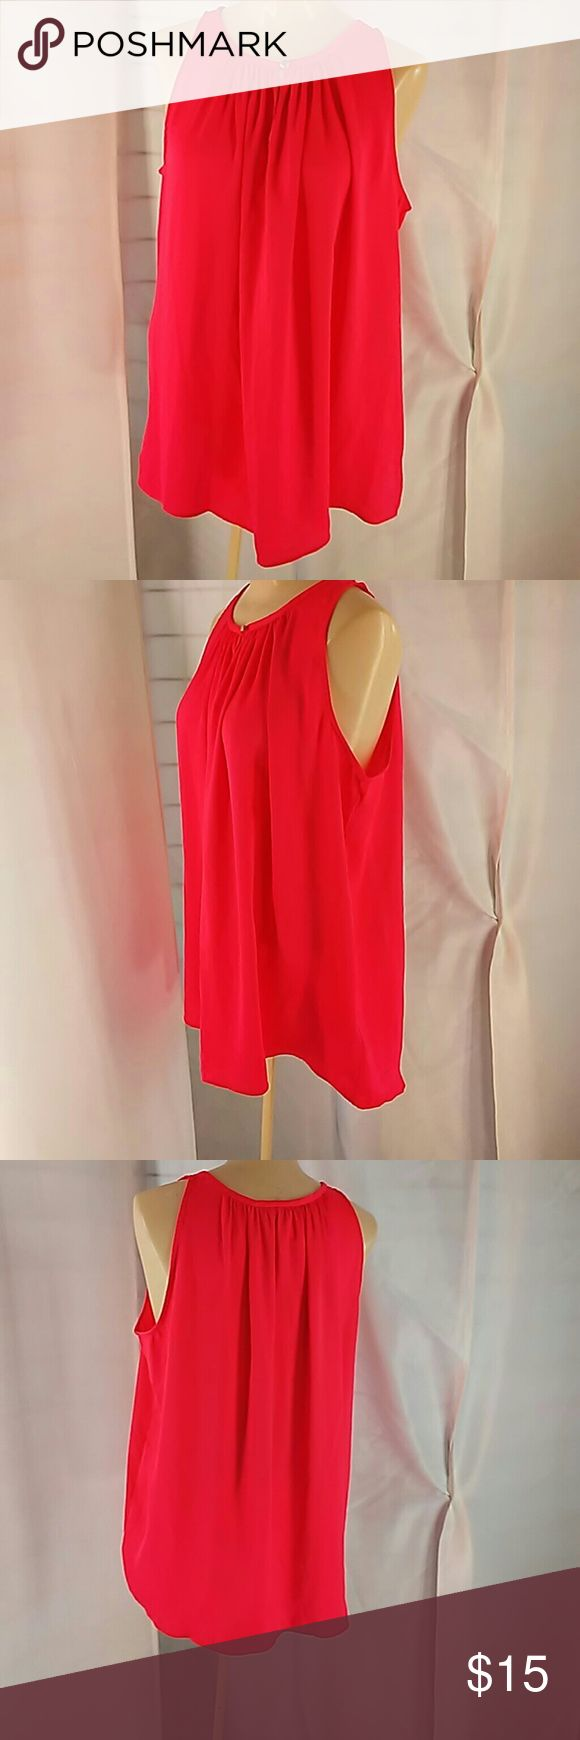 Jennifer Lopez shirt tail hem Blouse. NEON PINK!  Neckline has a halter look. Baring the shoulders. Size L 100% Polyester. It runs large. You can't help but be seen in this brilliant color. Looks magnificent with white pants or skirt or shorts. Jennifer Lopez Tops Blouses